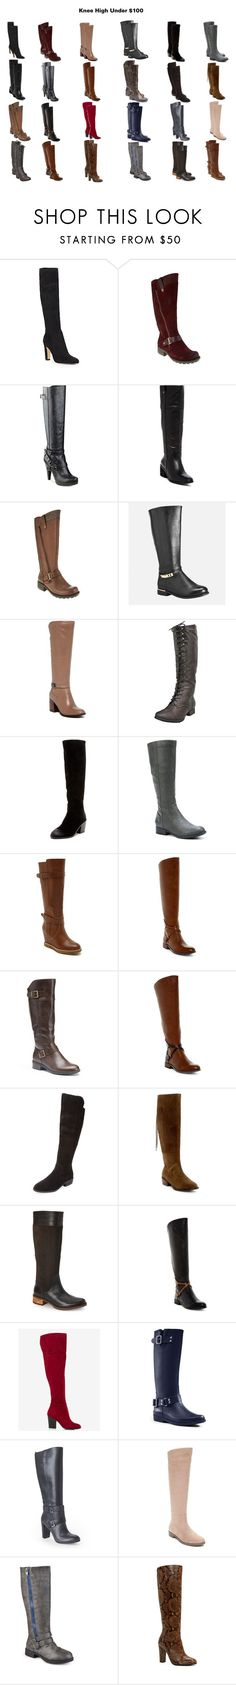 """Find Your Perfect Pair of Boots for Fall"" by sade-aladejana-lewis on Polyvore featuring Ivanka Trump, G by Guess, Vince Camuto, Franco Sarto, Kelsi Dagger Brooklyn, LifeStride, Very Volatile, Andrew Geller, Steven by Steve Madden and Timberland"